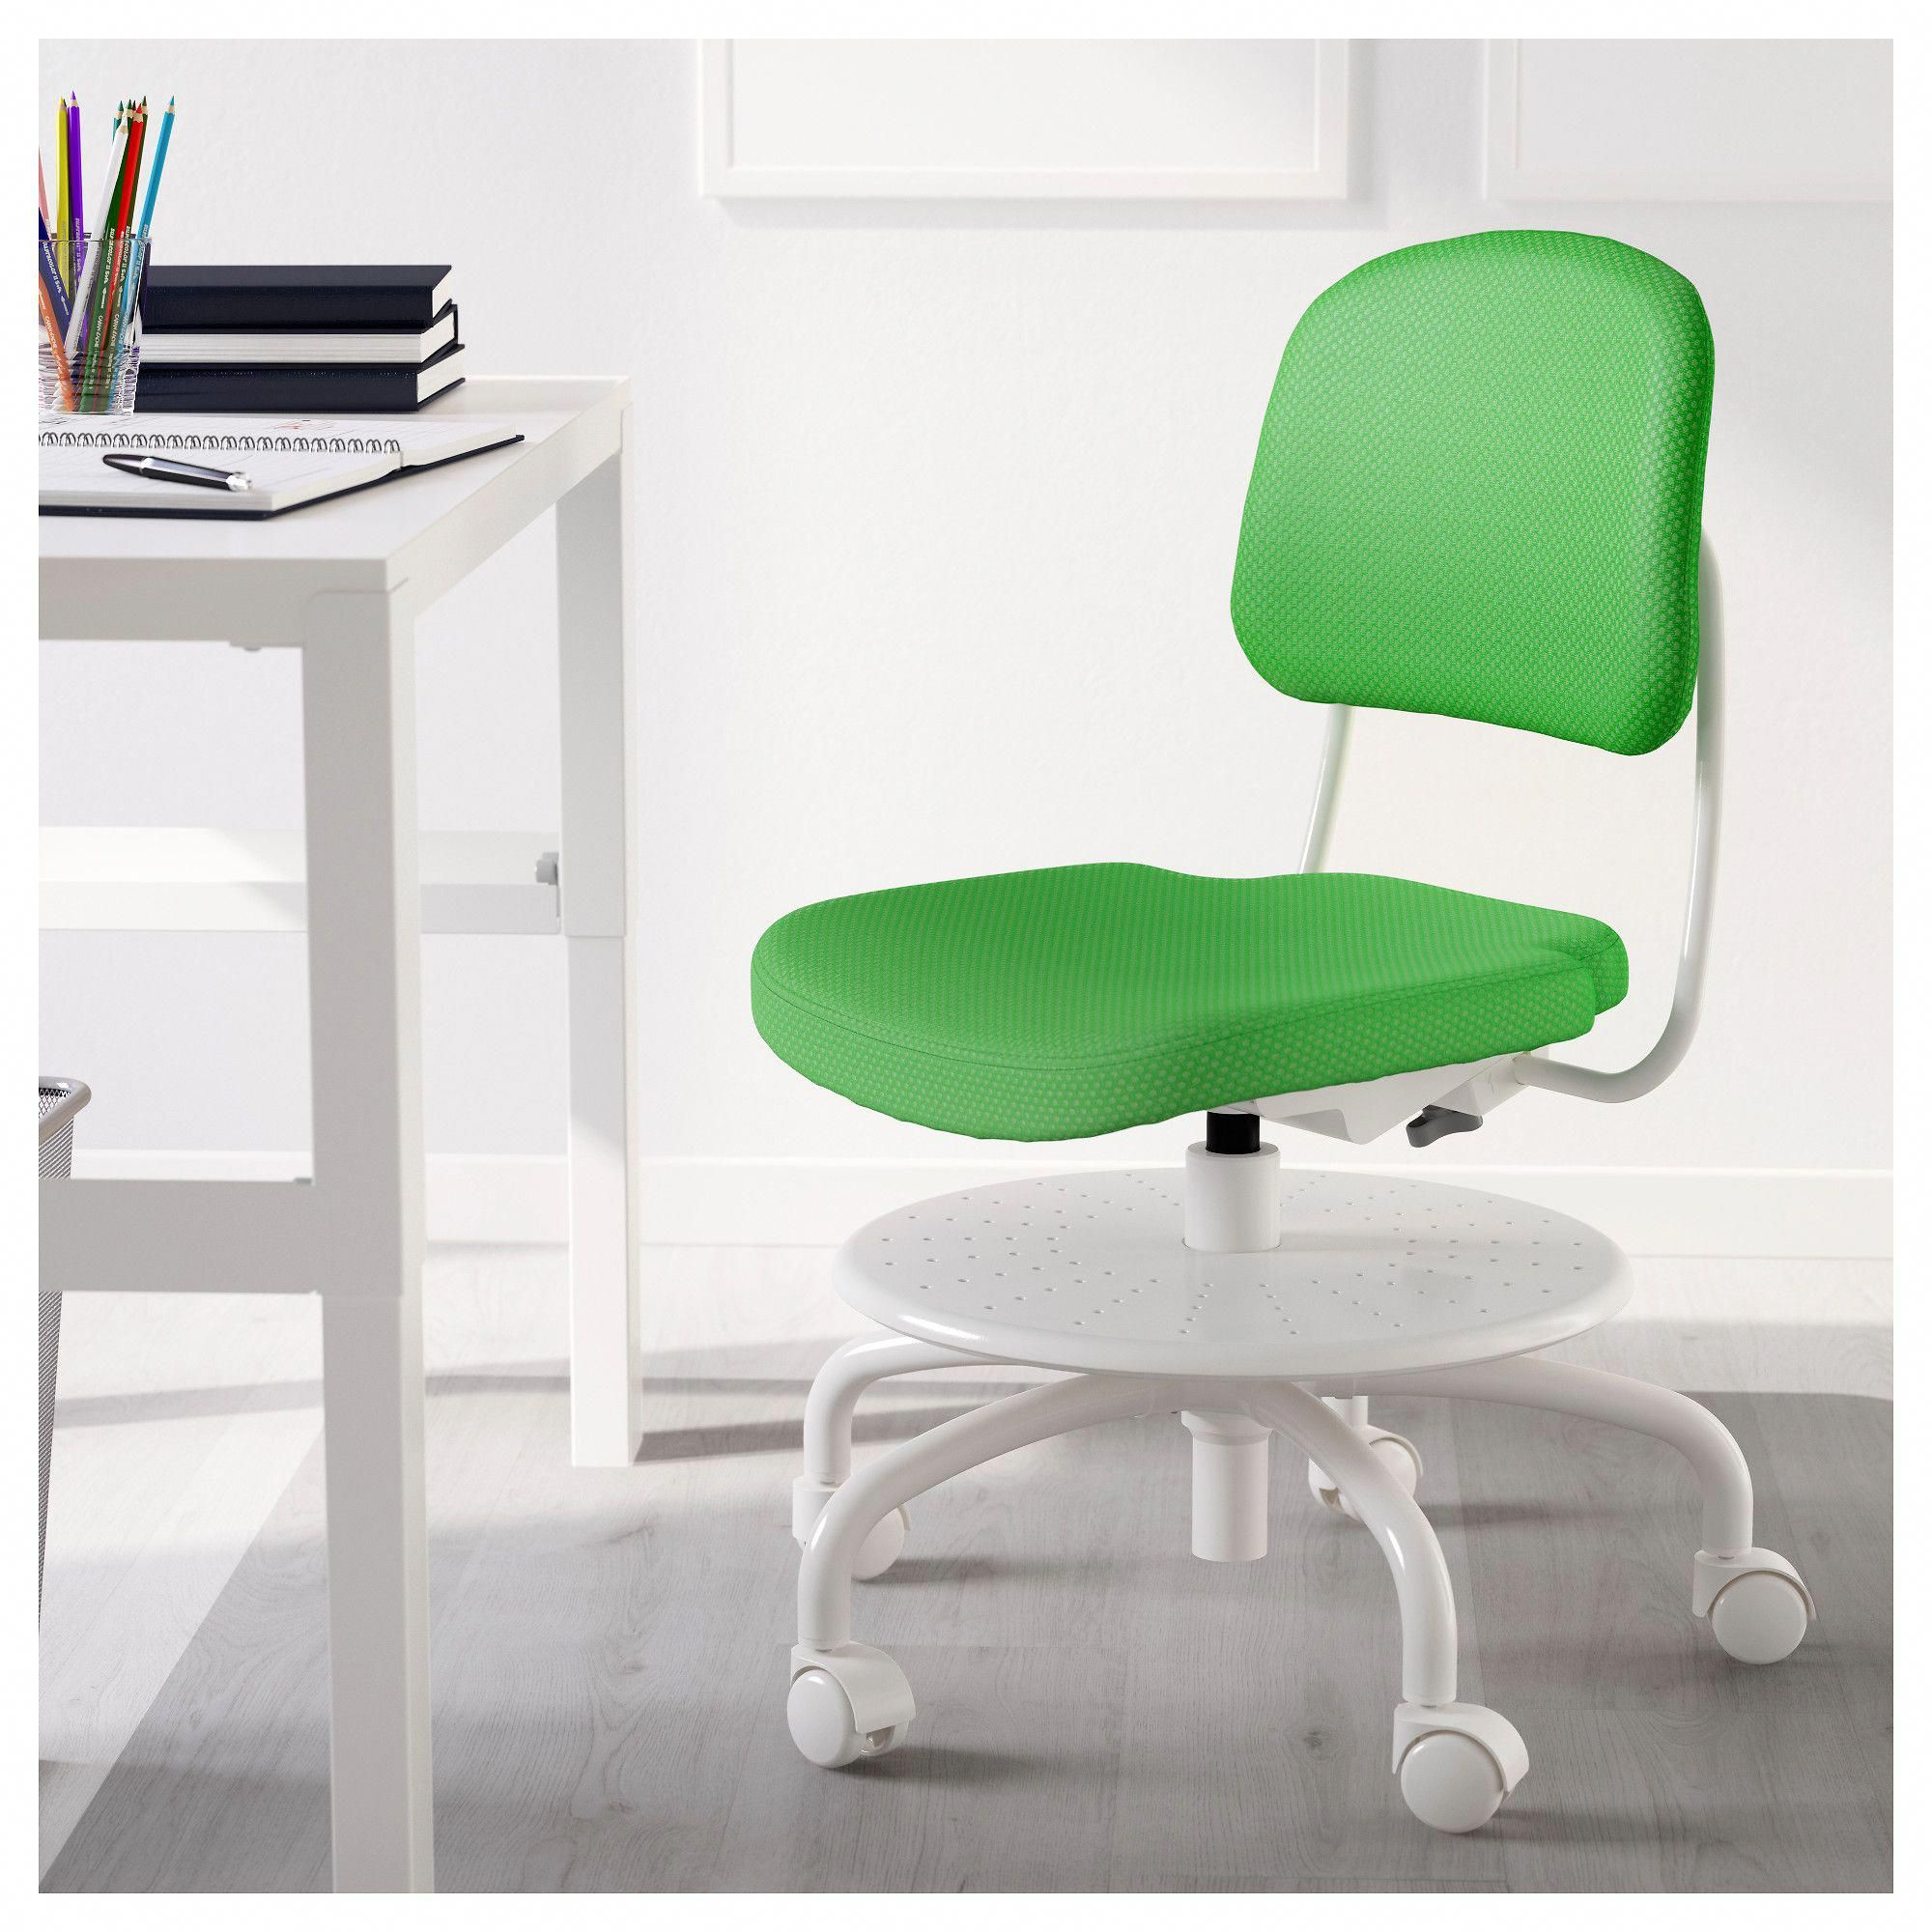 Incredible Ikea Vimund Childs Desk Chair Bright Green Deskchair Gmtry Best Dining Table And Chair Ideas Images Gmtryco